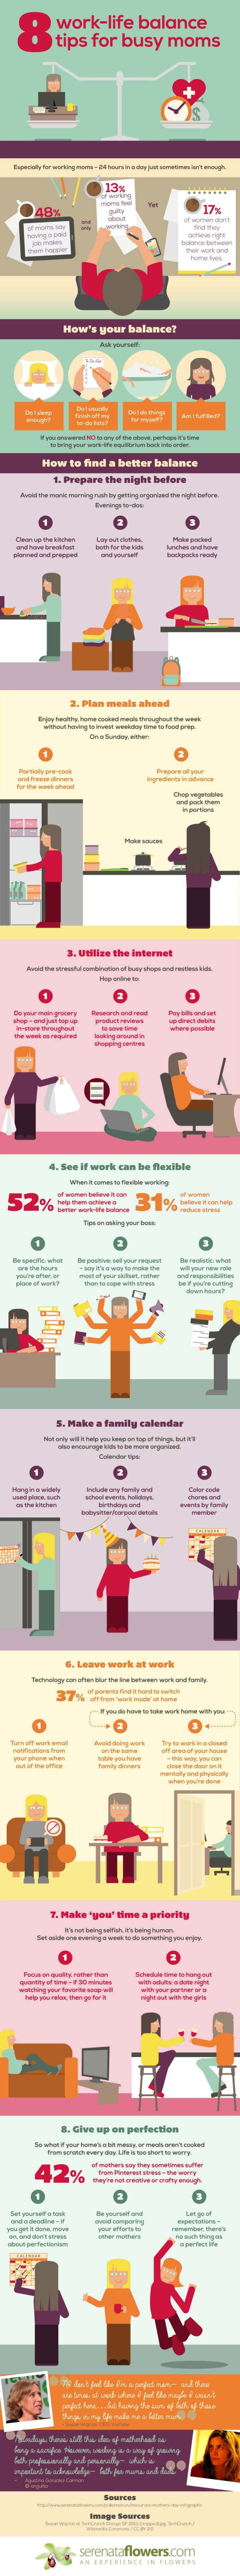 8 Work-Life Balance Tips for Busy Moms #infographic